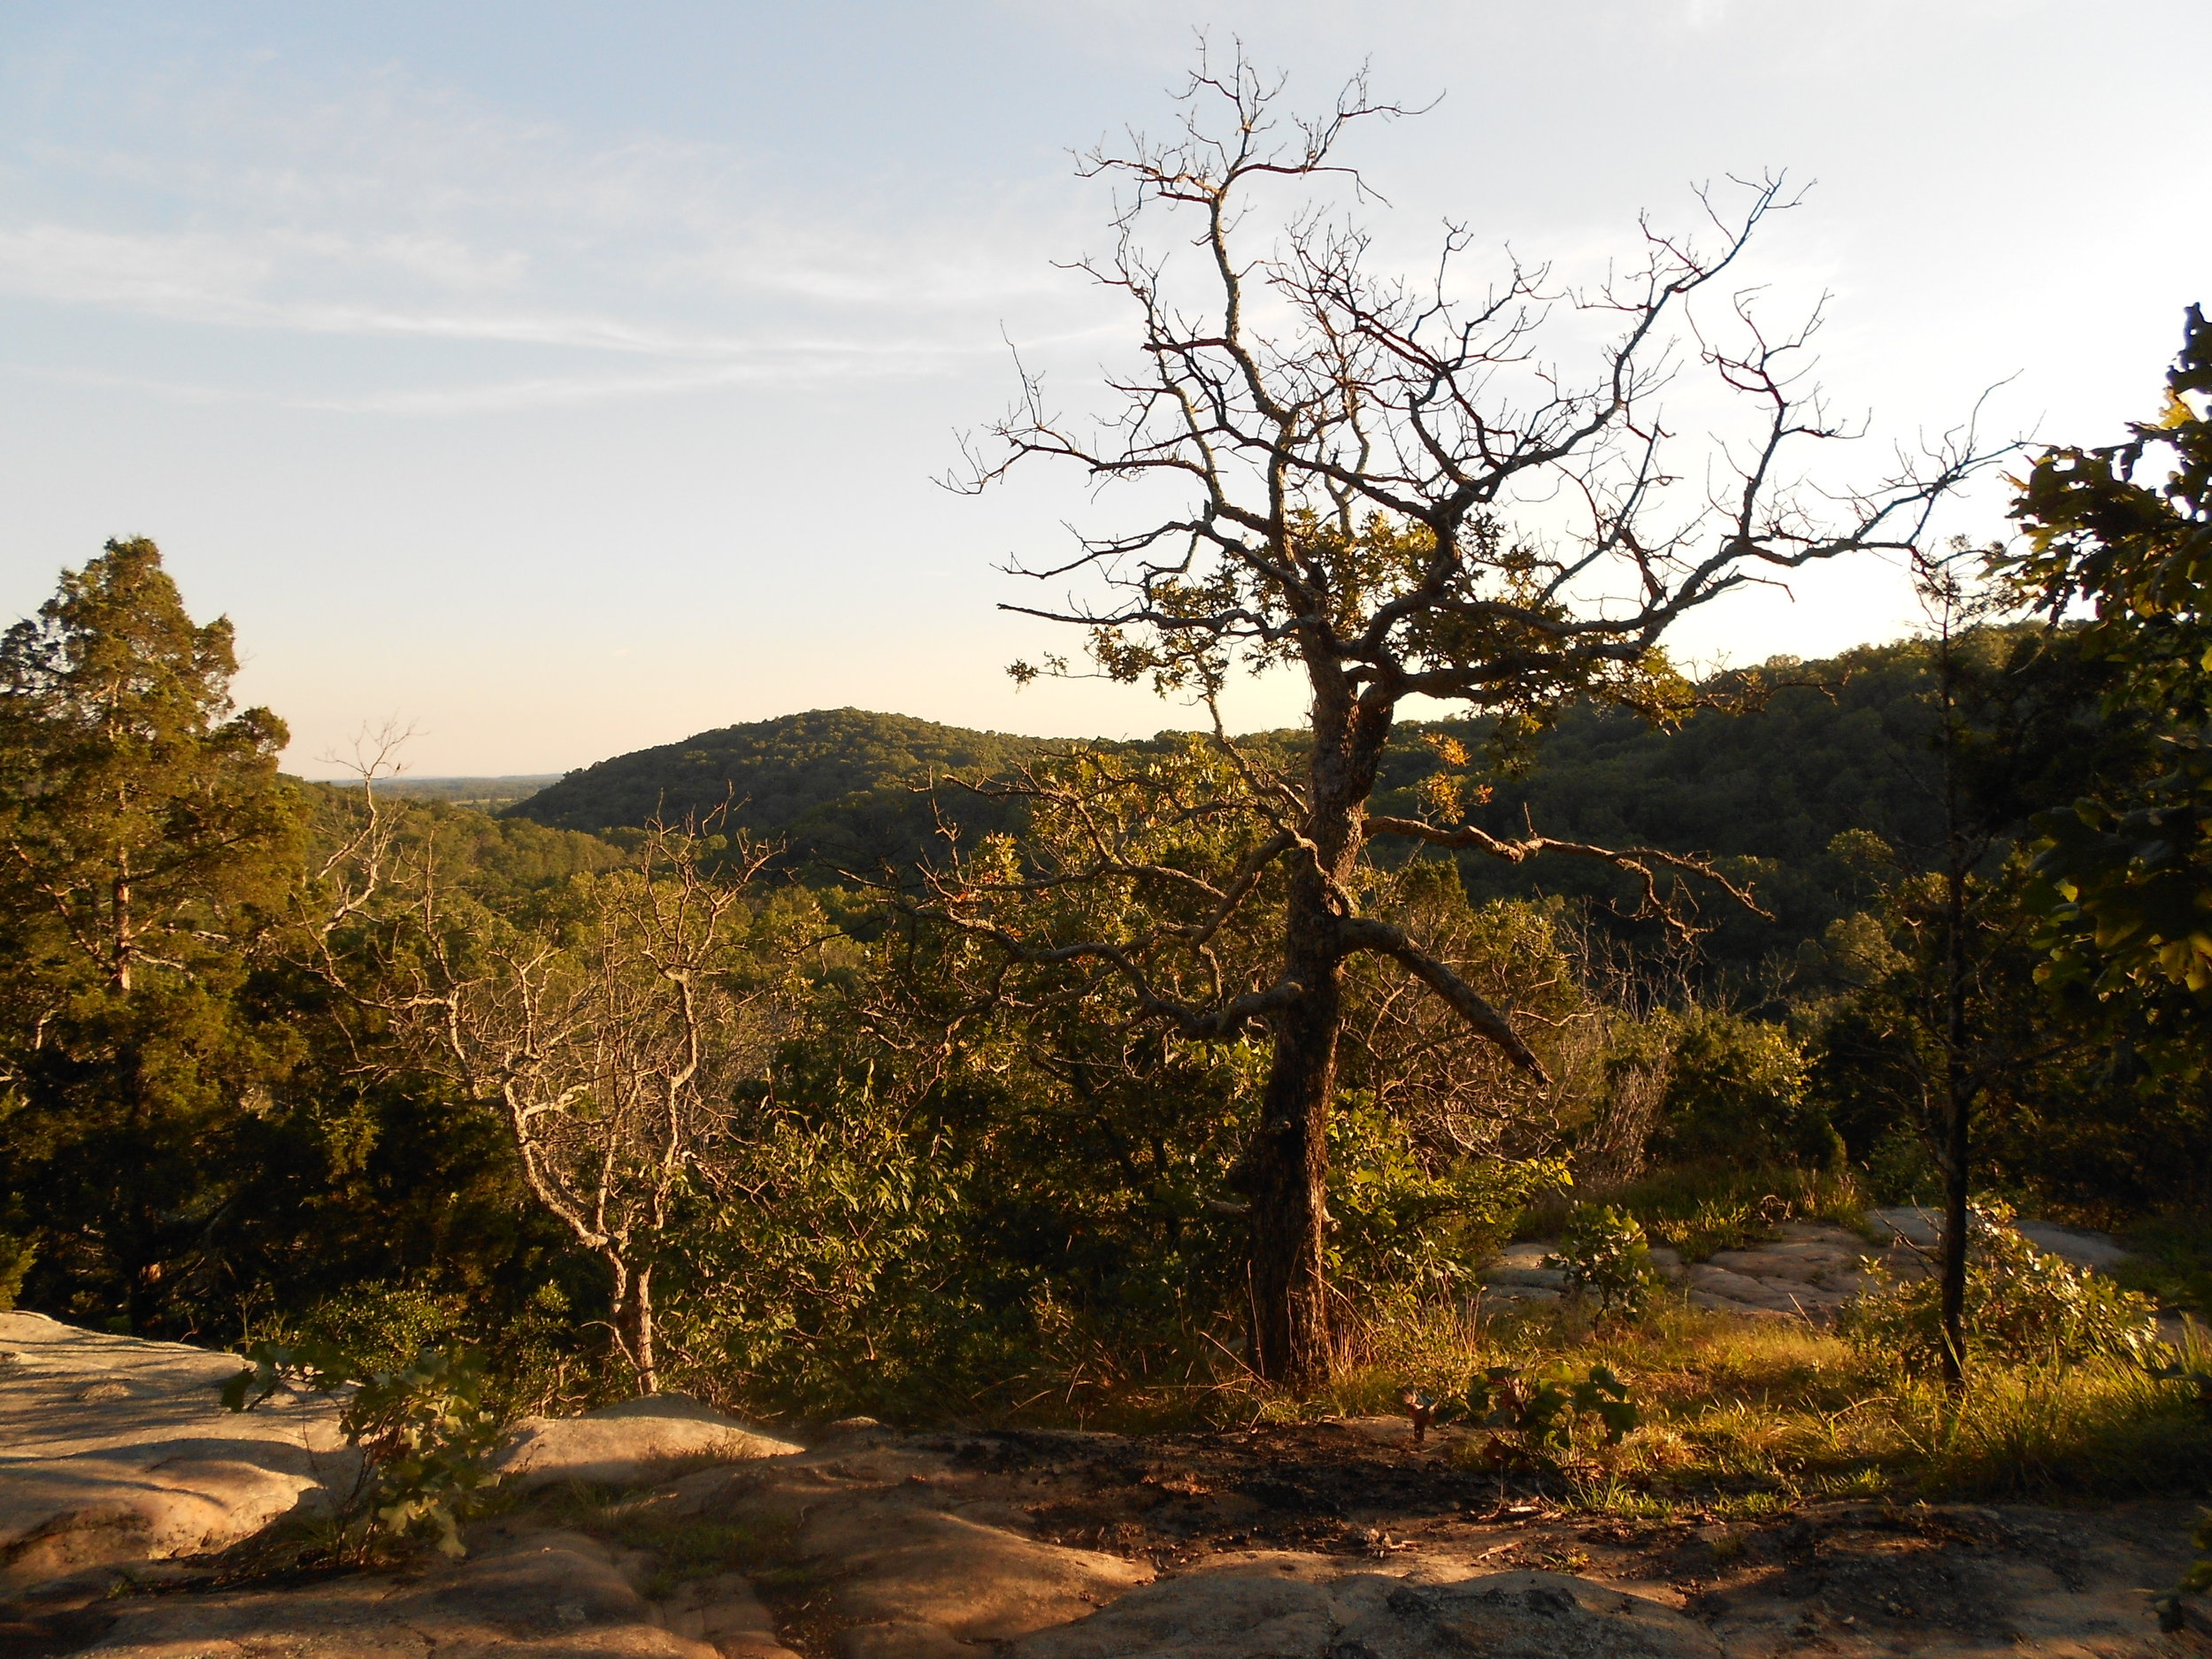 Lusk Creek Wilderness, Shawnee National Forest   Where the glaciers stopped, the ancient and rugged terrain of the Shawnee National Forest remained unscathed. Explore mile after mile along pristine streams, bewildering boulders and hidden canyons.  At the bottom of Illinois nestled between the Ohio and Mississippi rivers, it's okay to ask if we're still in the Land of Lincoln.